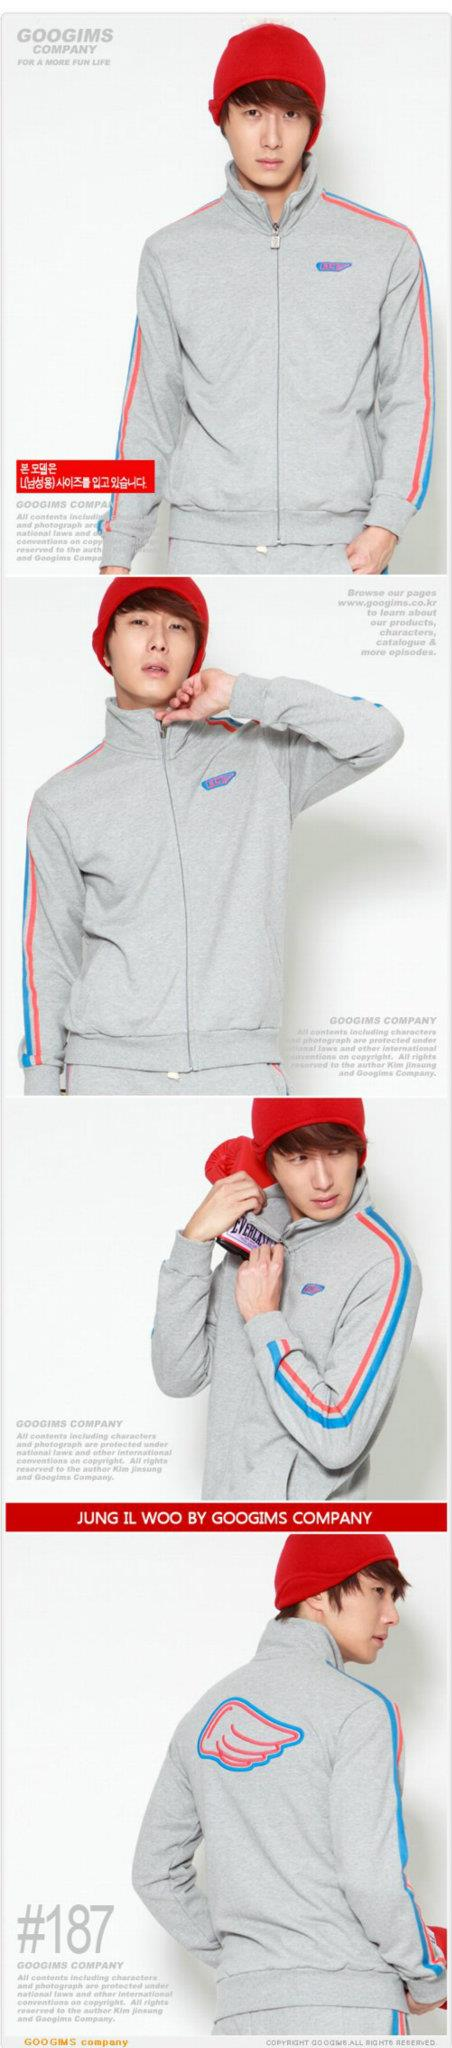 2011 10 Jung II-woo for Googims. Part 3 00006